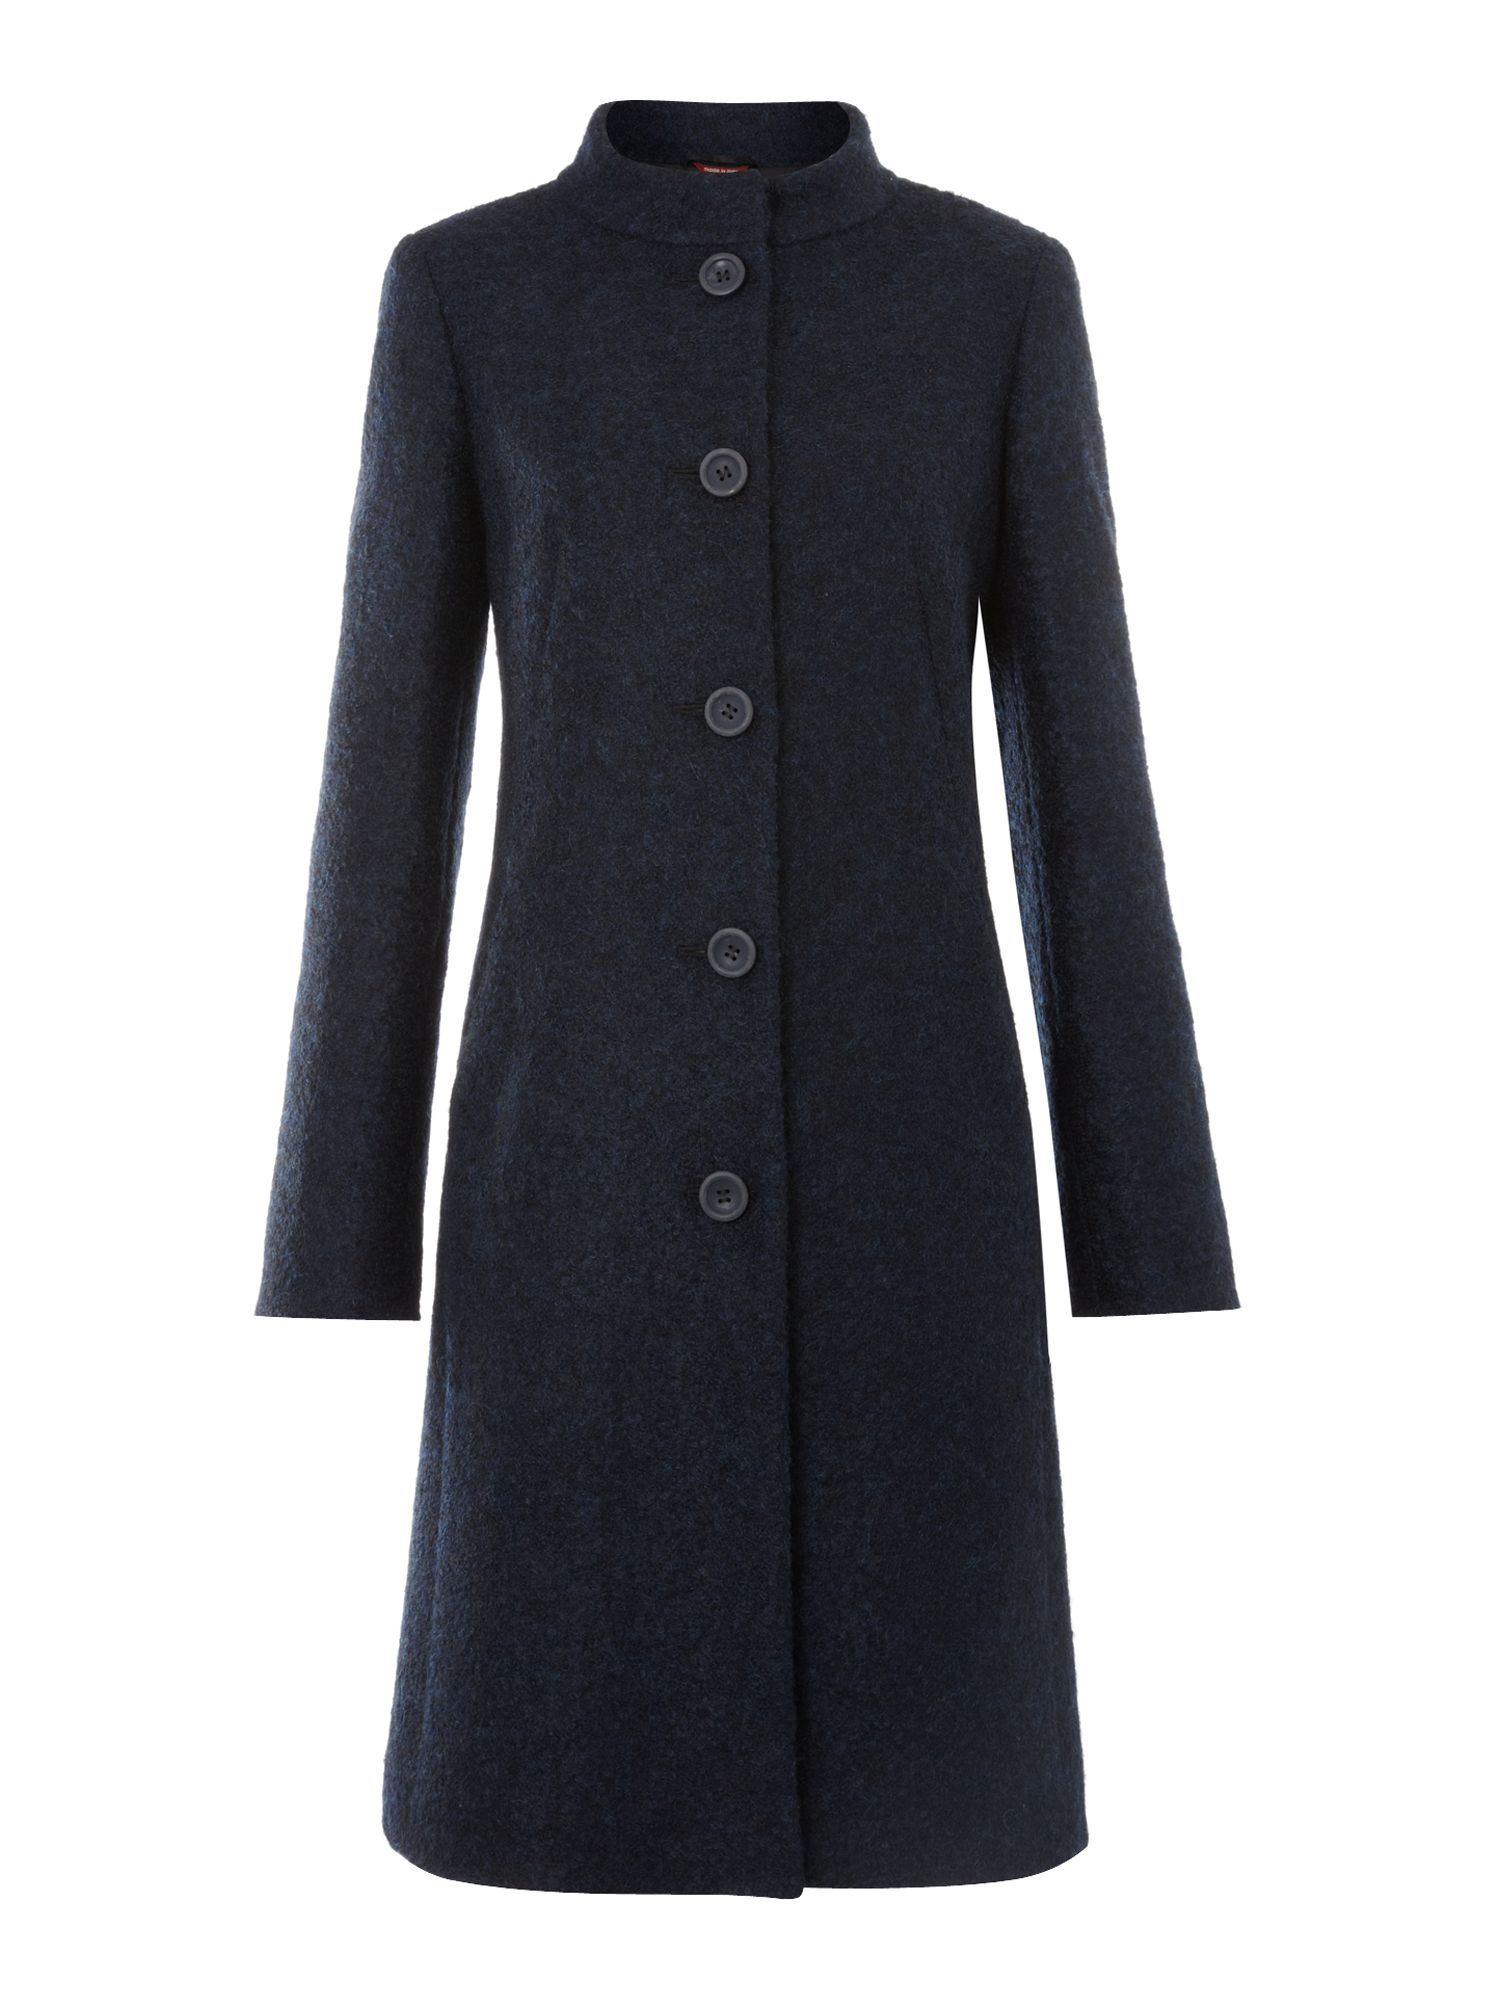 MaxMara Studio Gregory funnel neck car coat, Midnight Blue